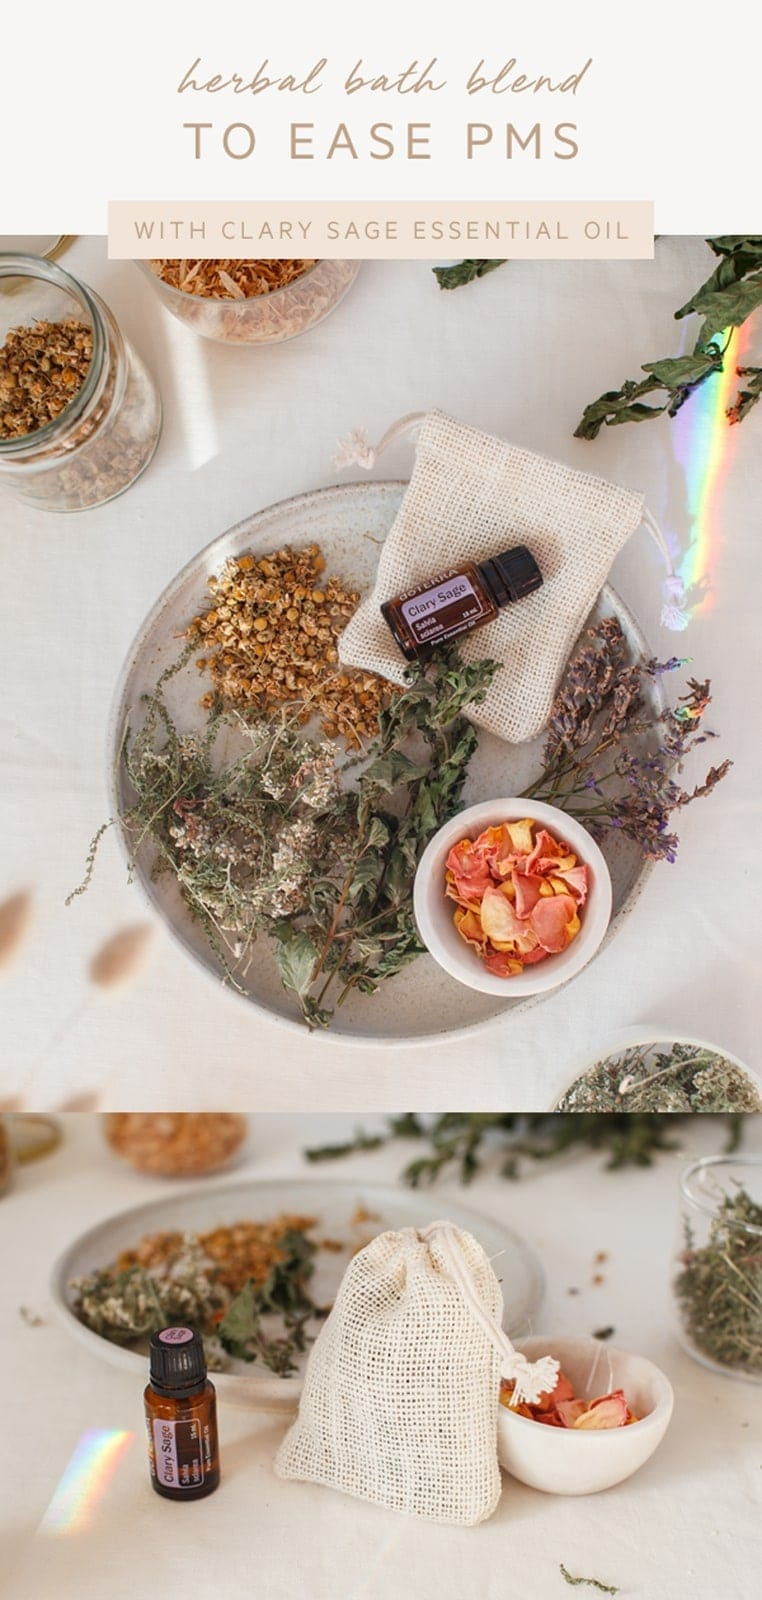 A herbal bath for PMS - a simple therapeutic recipe. #herbalbath #bathtea #herbaltea #hormones #PMS #essentialoils #doterra #AscensionKitchen